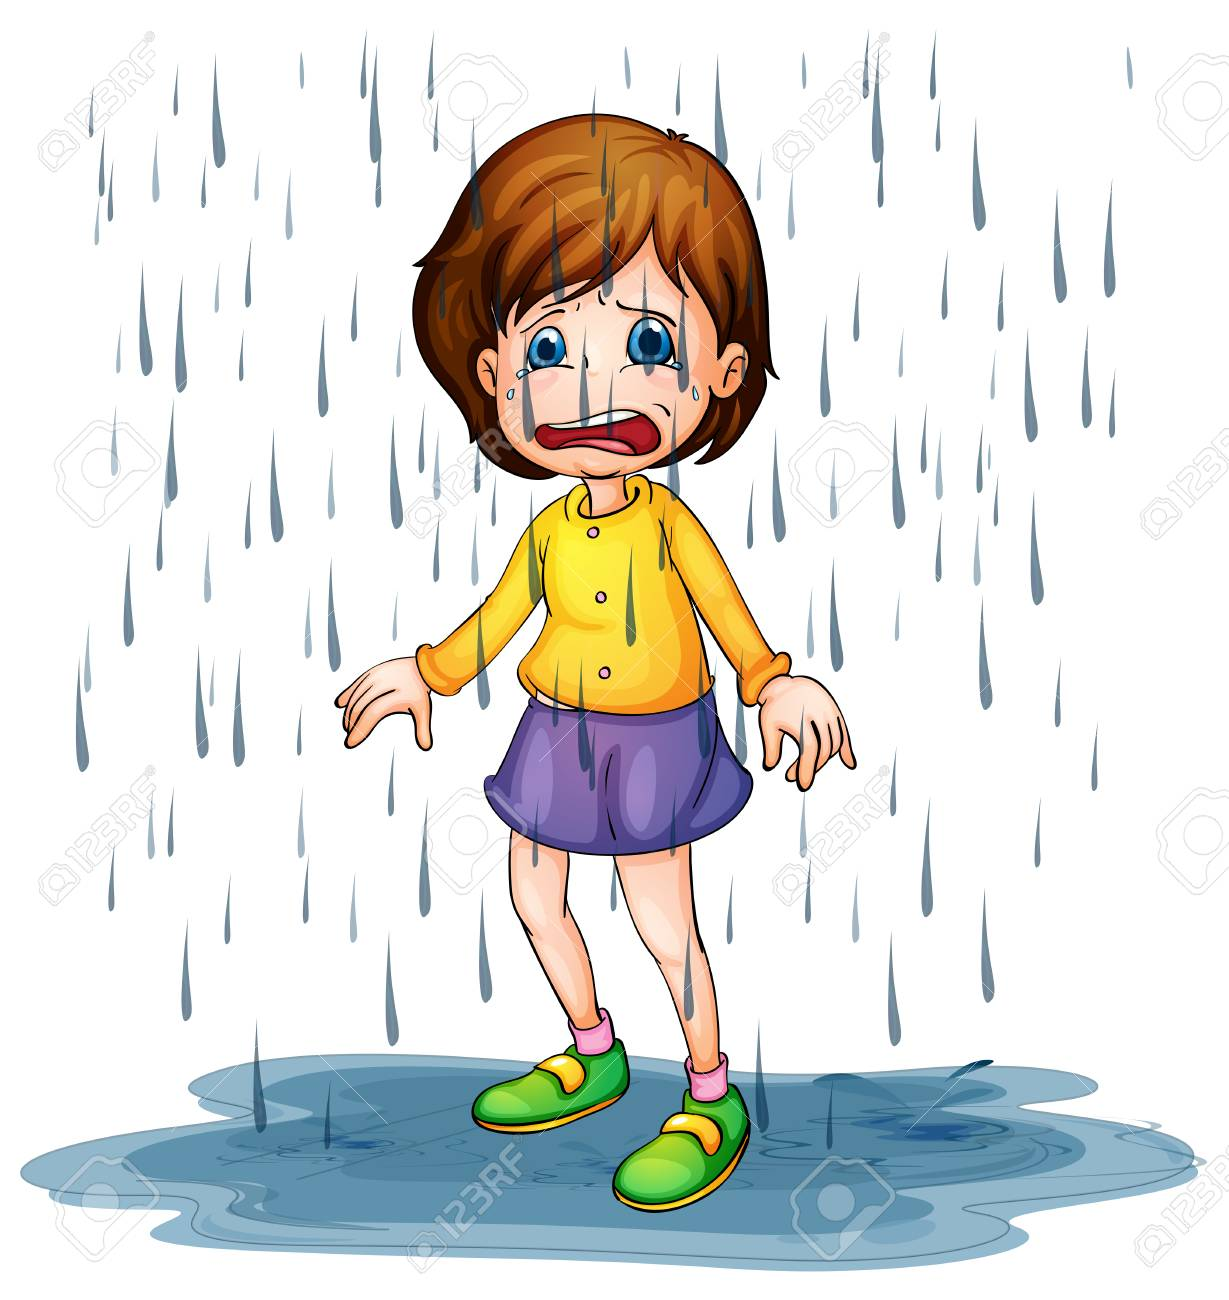 Sad girl standing in the rain illustration.